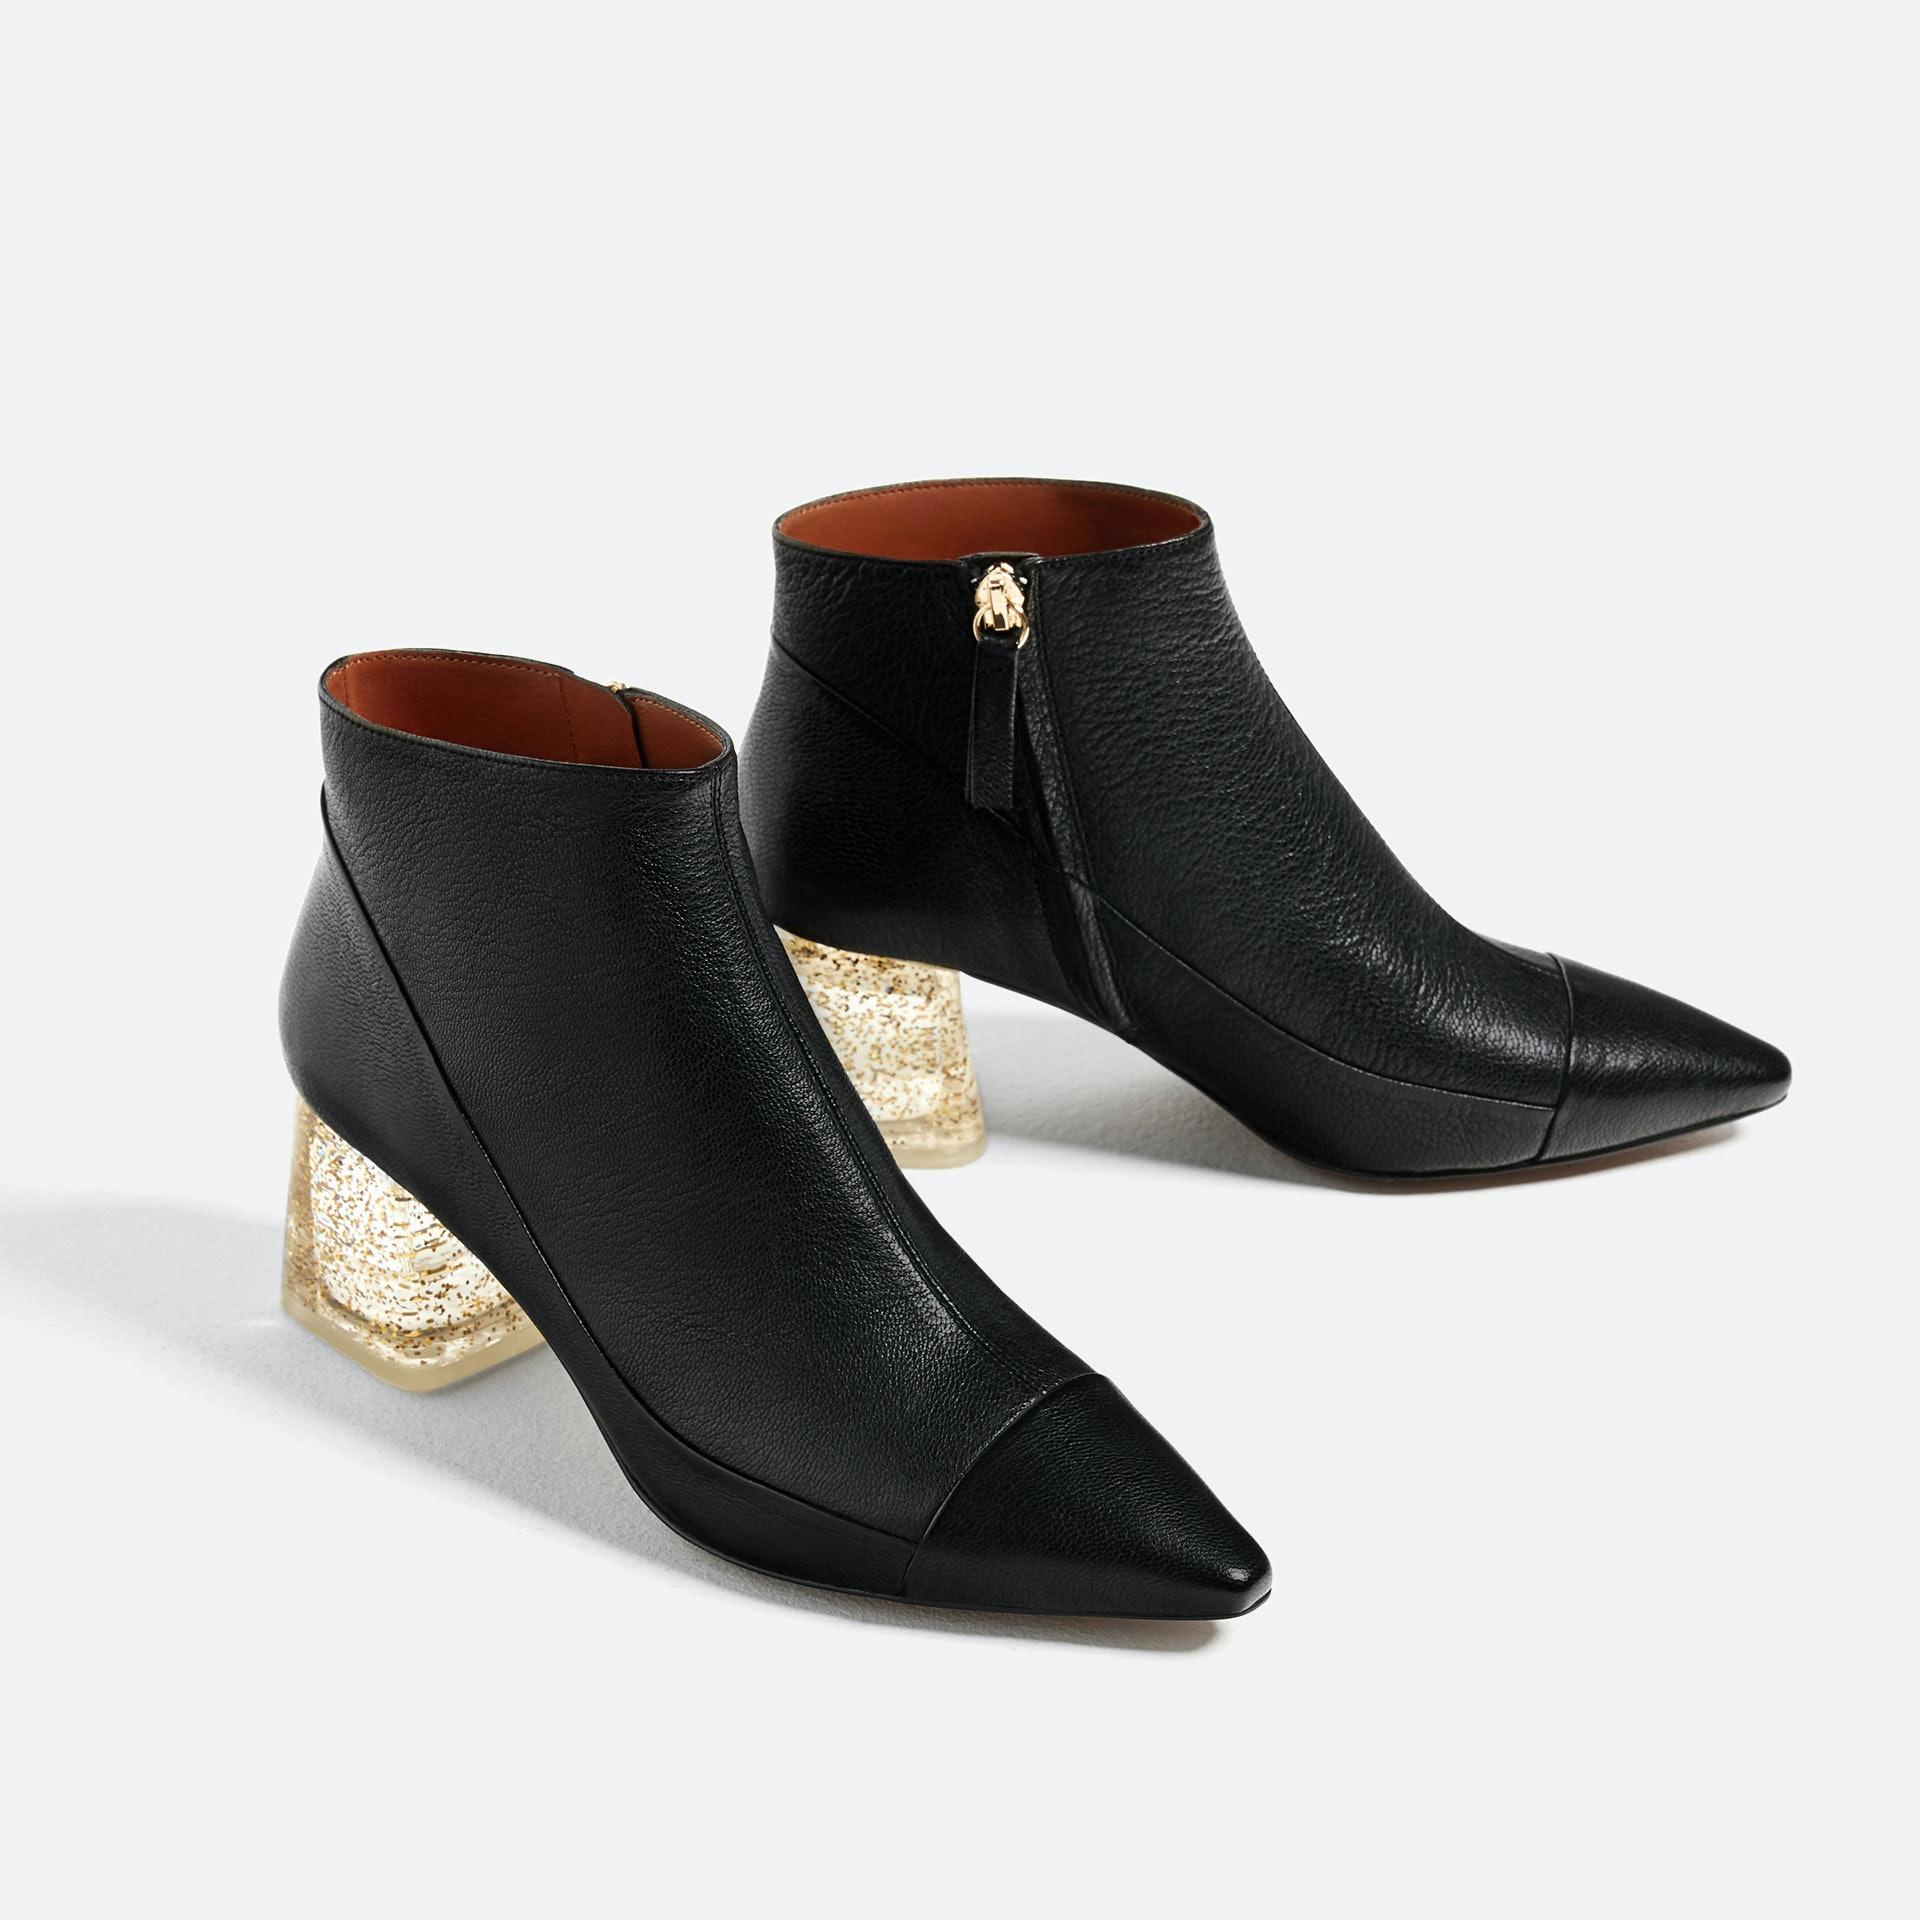 6bd5e725825 11 Warm Heels For New Year s Eve So You Can Slay Without Getting Frostbite  — PHOTOS